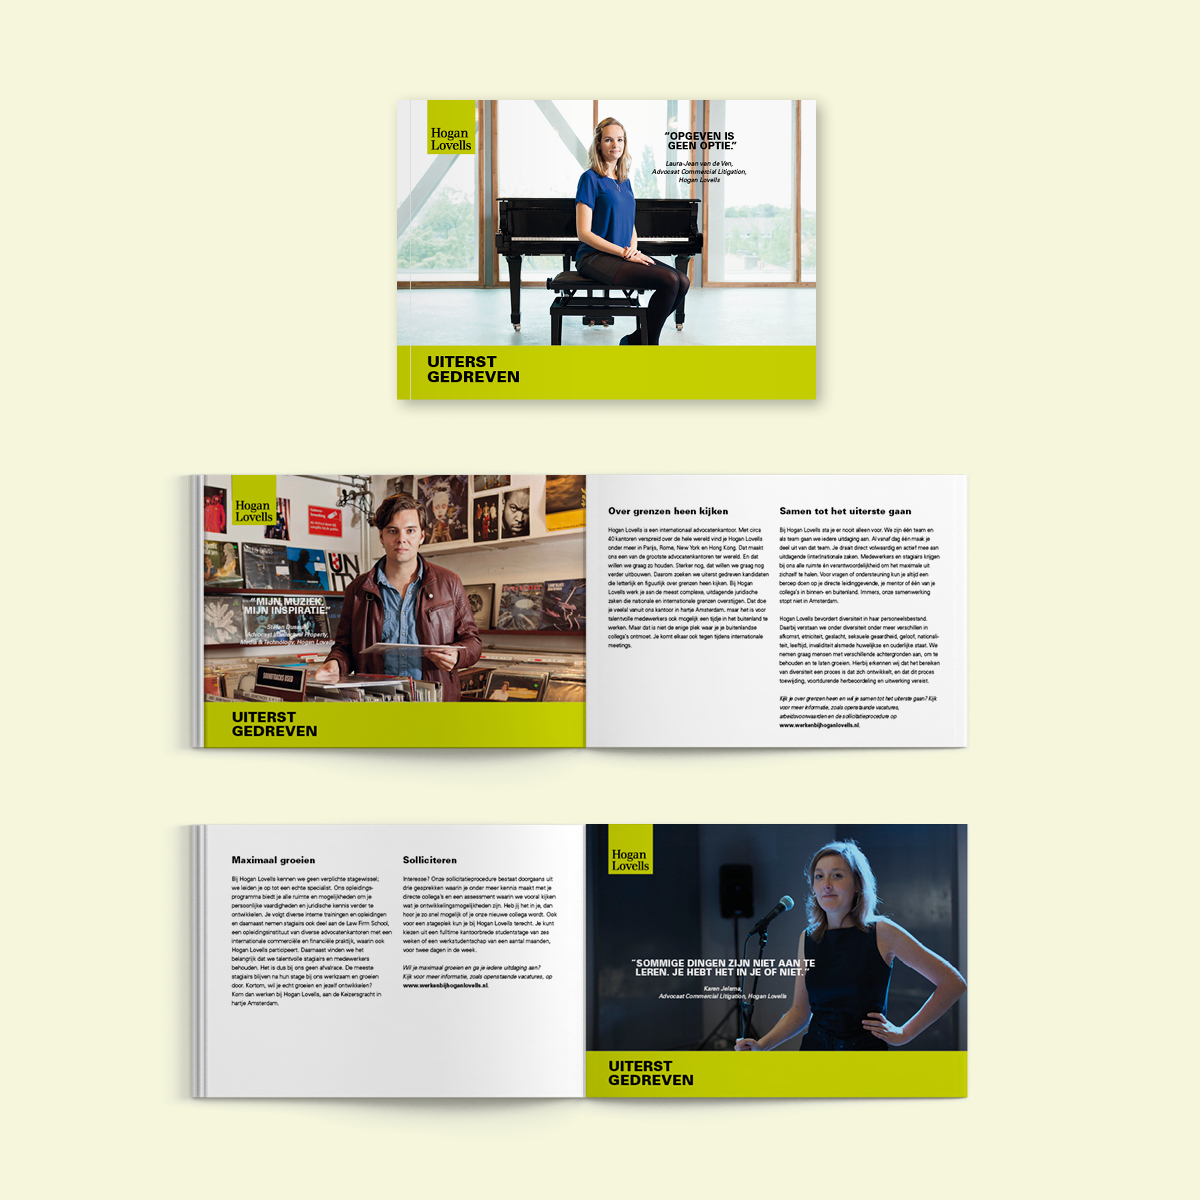 Hogan Lovells | Brochure | Creative Digital Agency Puntkomma Nijmegen